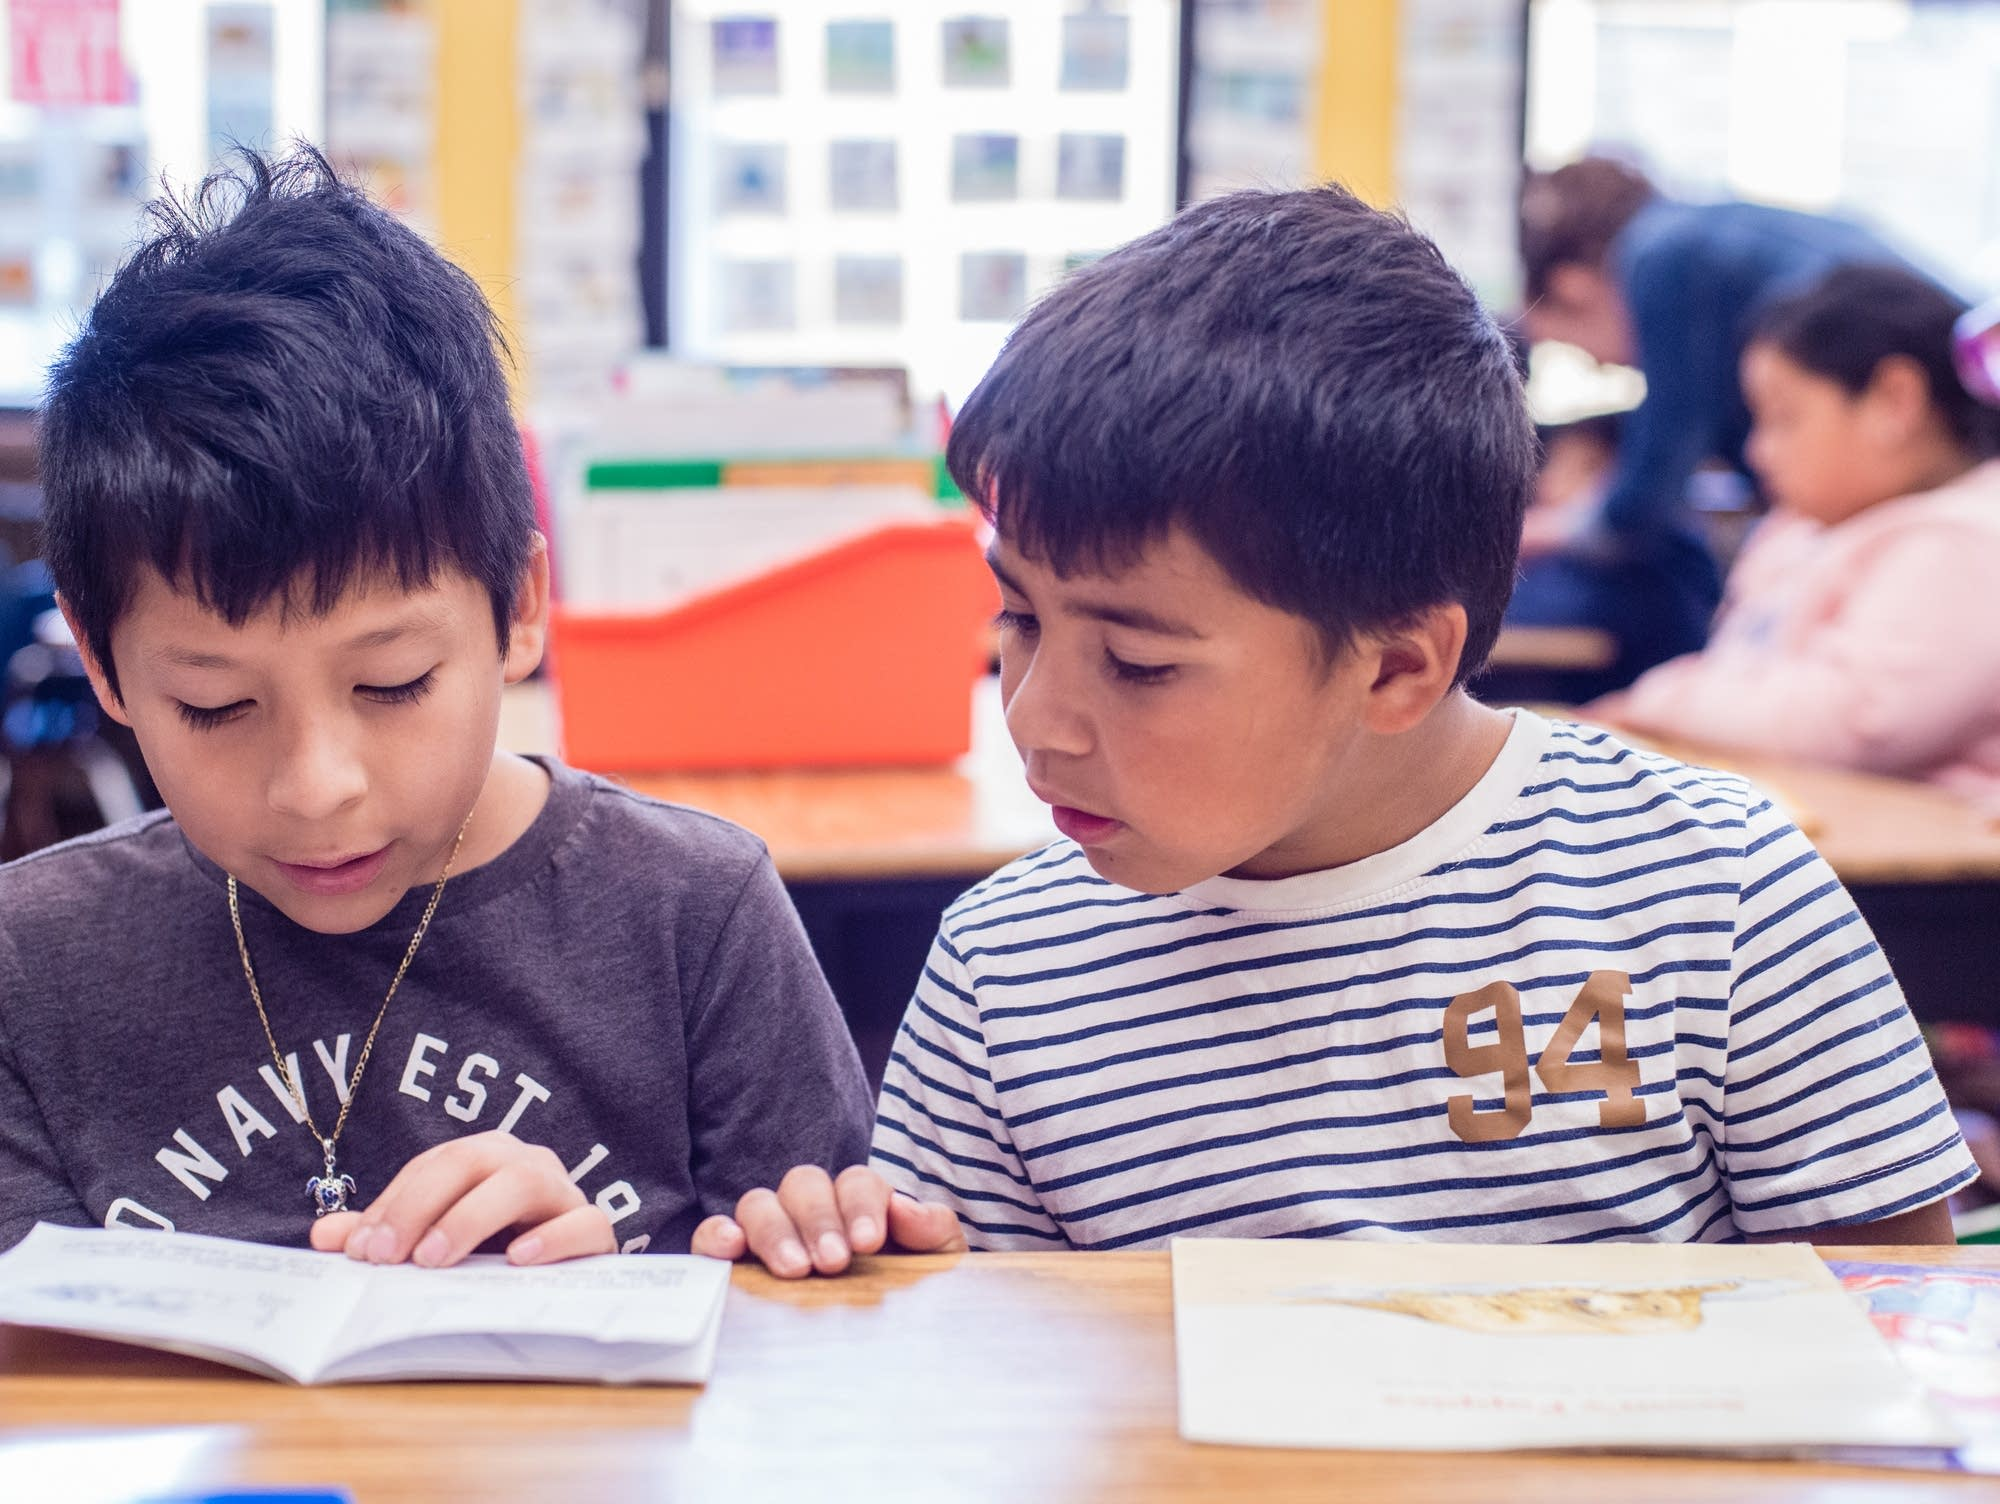 First-graders in Oakland, California, practice reading.